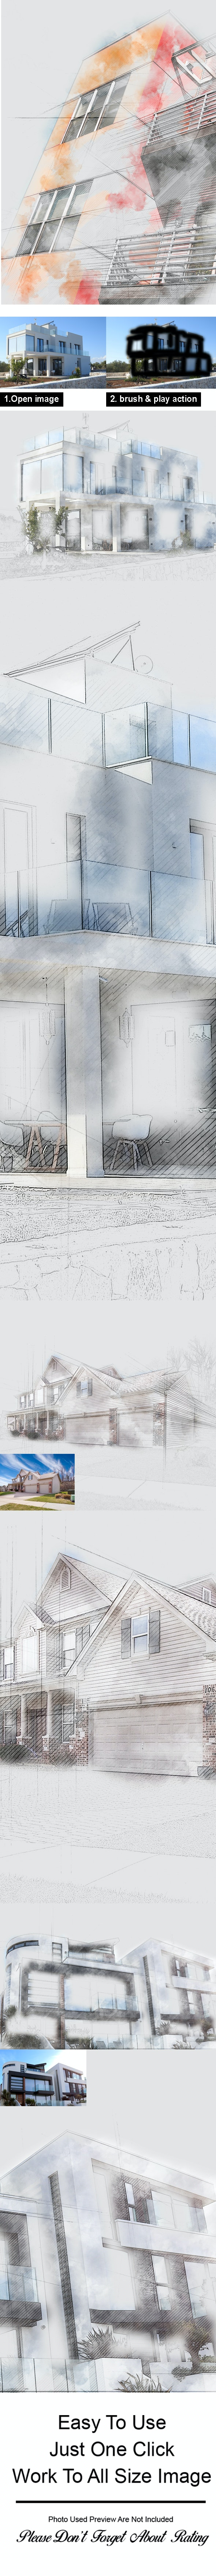 Unfinished Sketch Photoshop Action - Photo Effects Actions